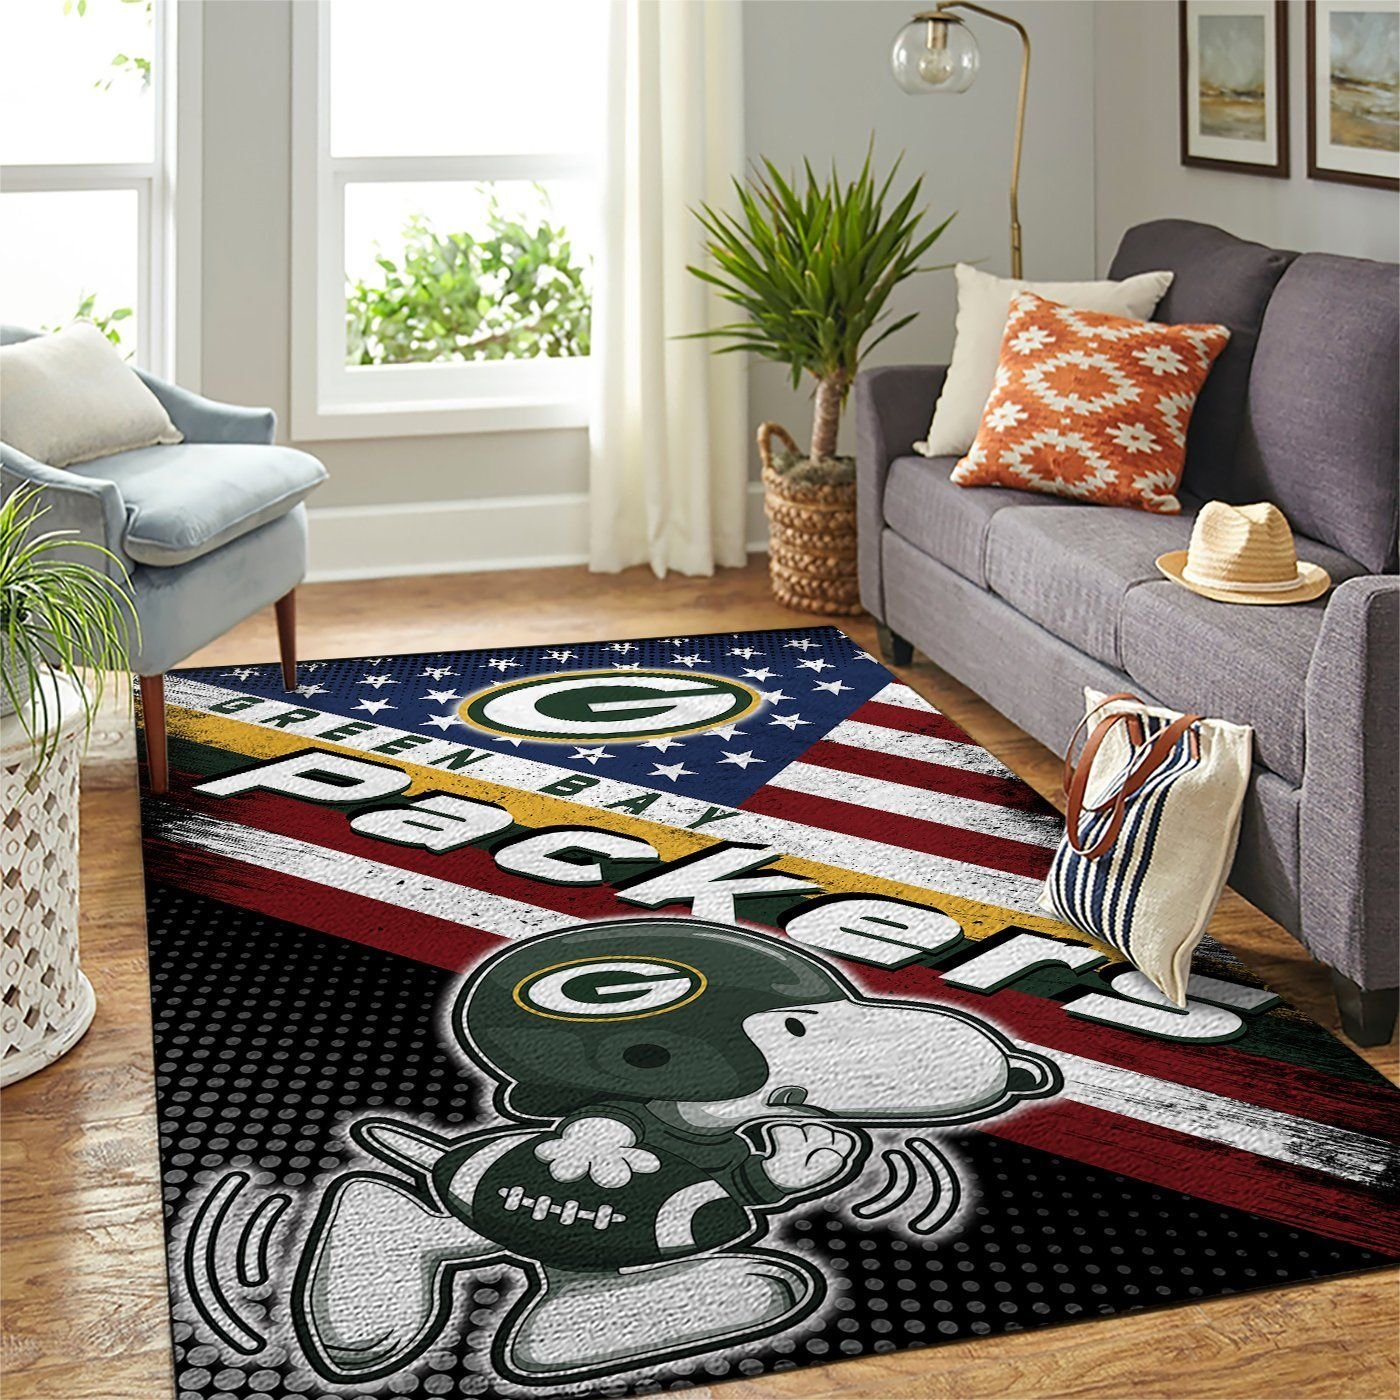 Amazon Green Bay Packers Living Room Area No3123 Rug